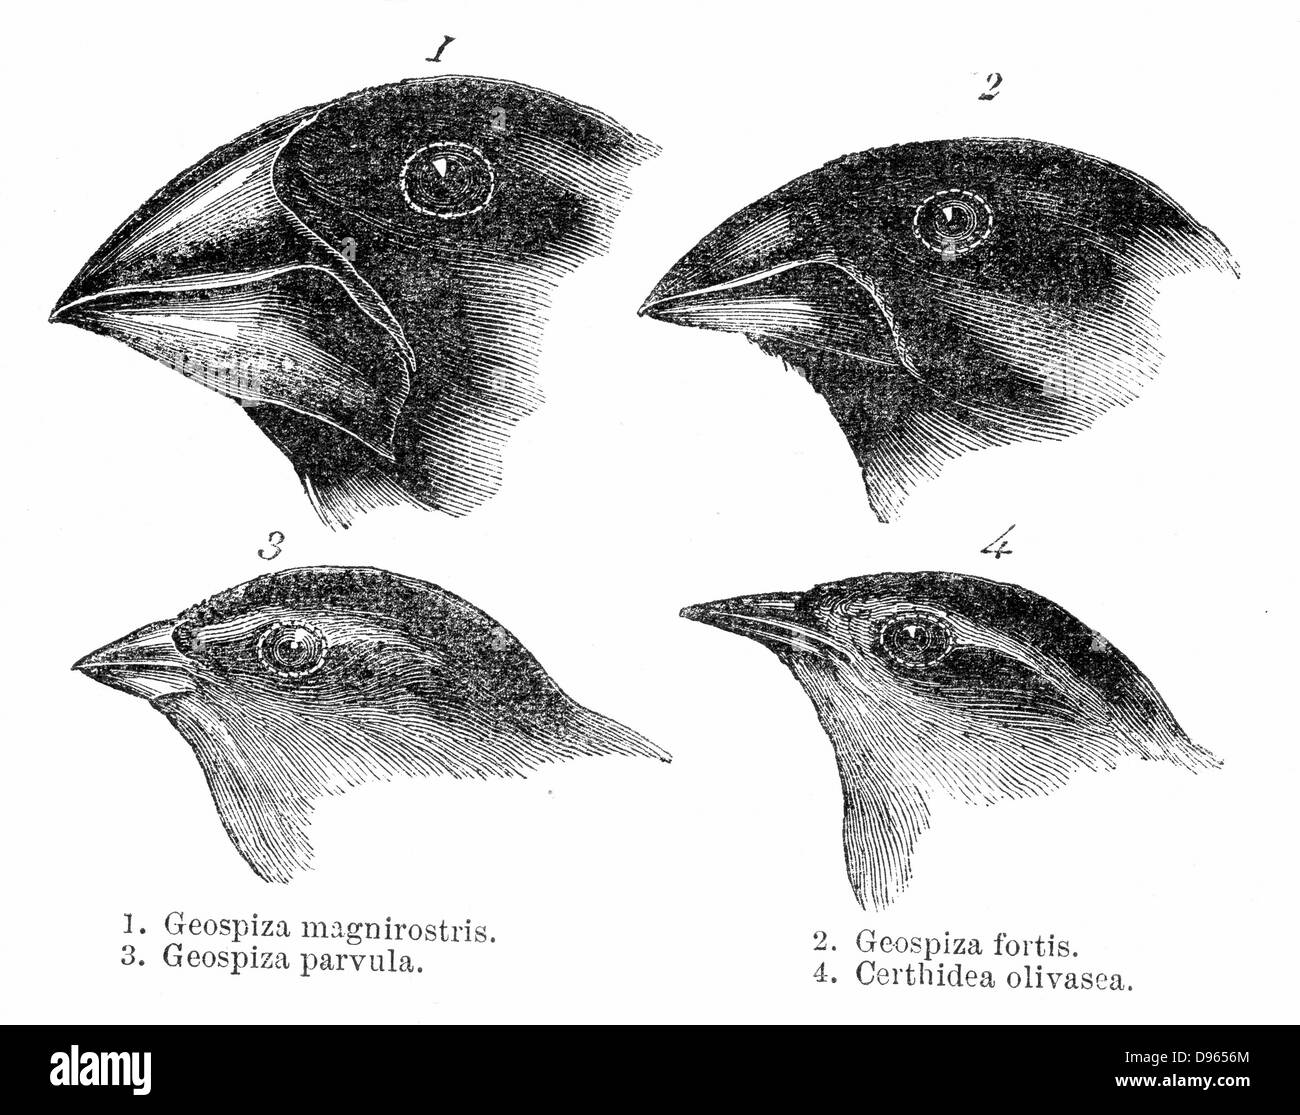 darwins finches The discovery of these birds from the galapagos and cocos islands made charles darwin famous long before the publication of on the origin of species.